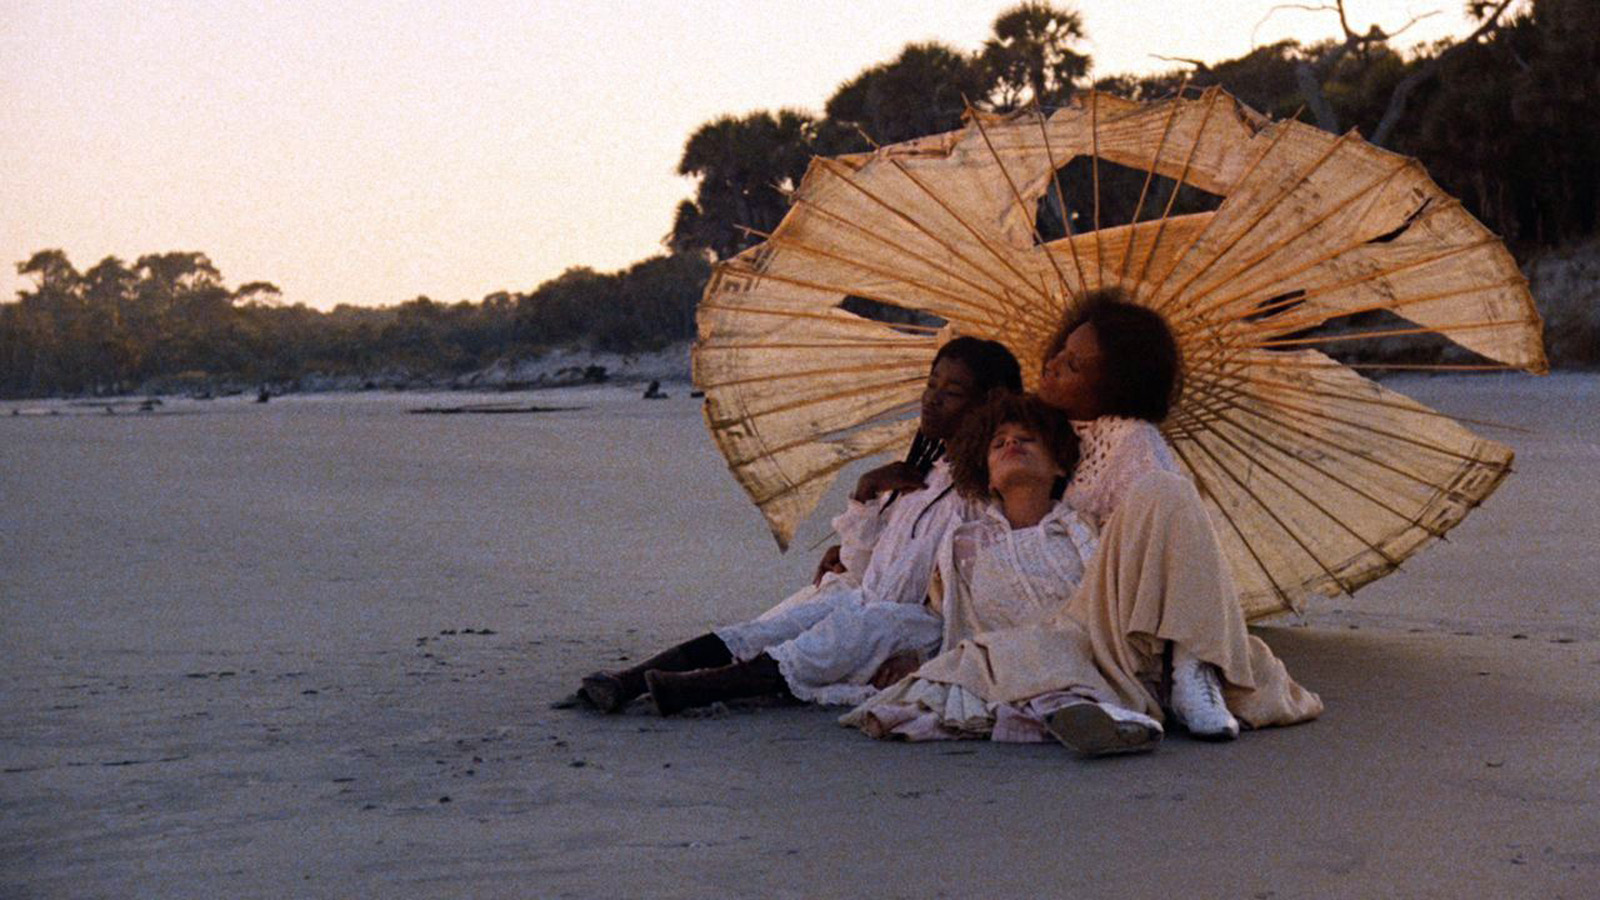 Still from the film Daughters of the Dust